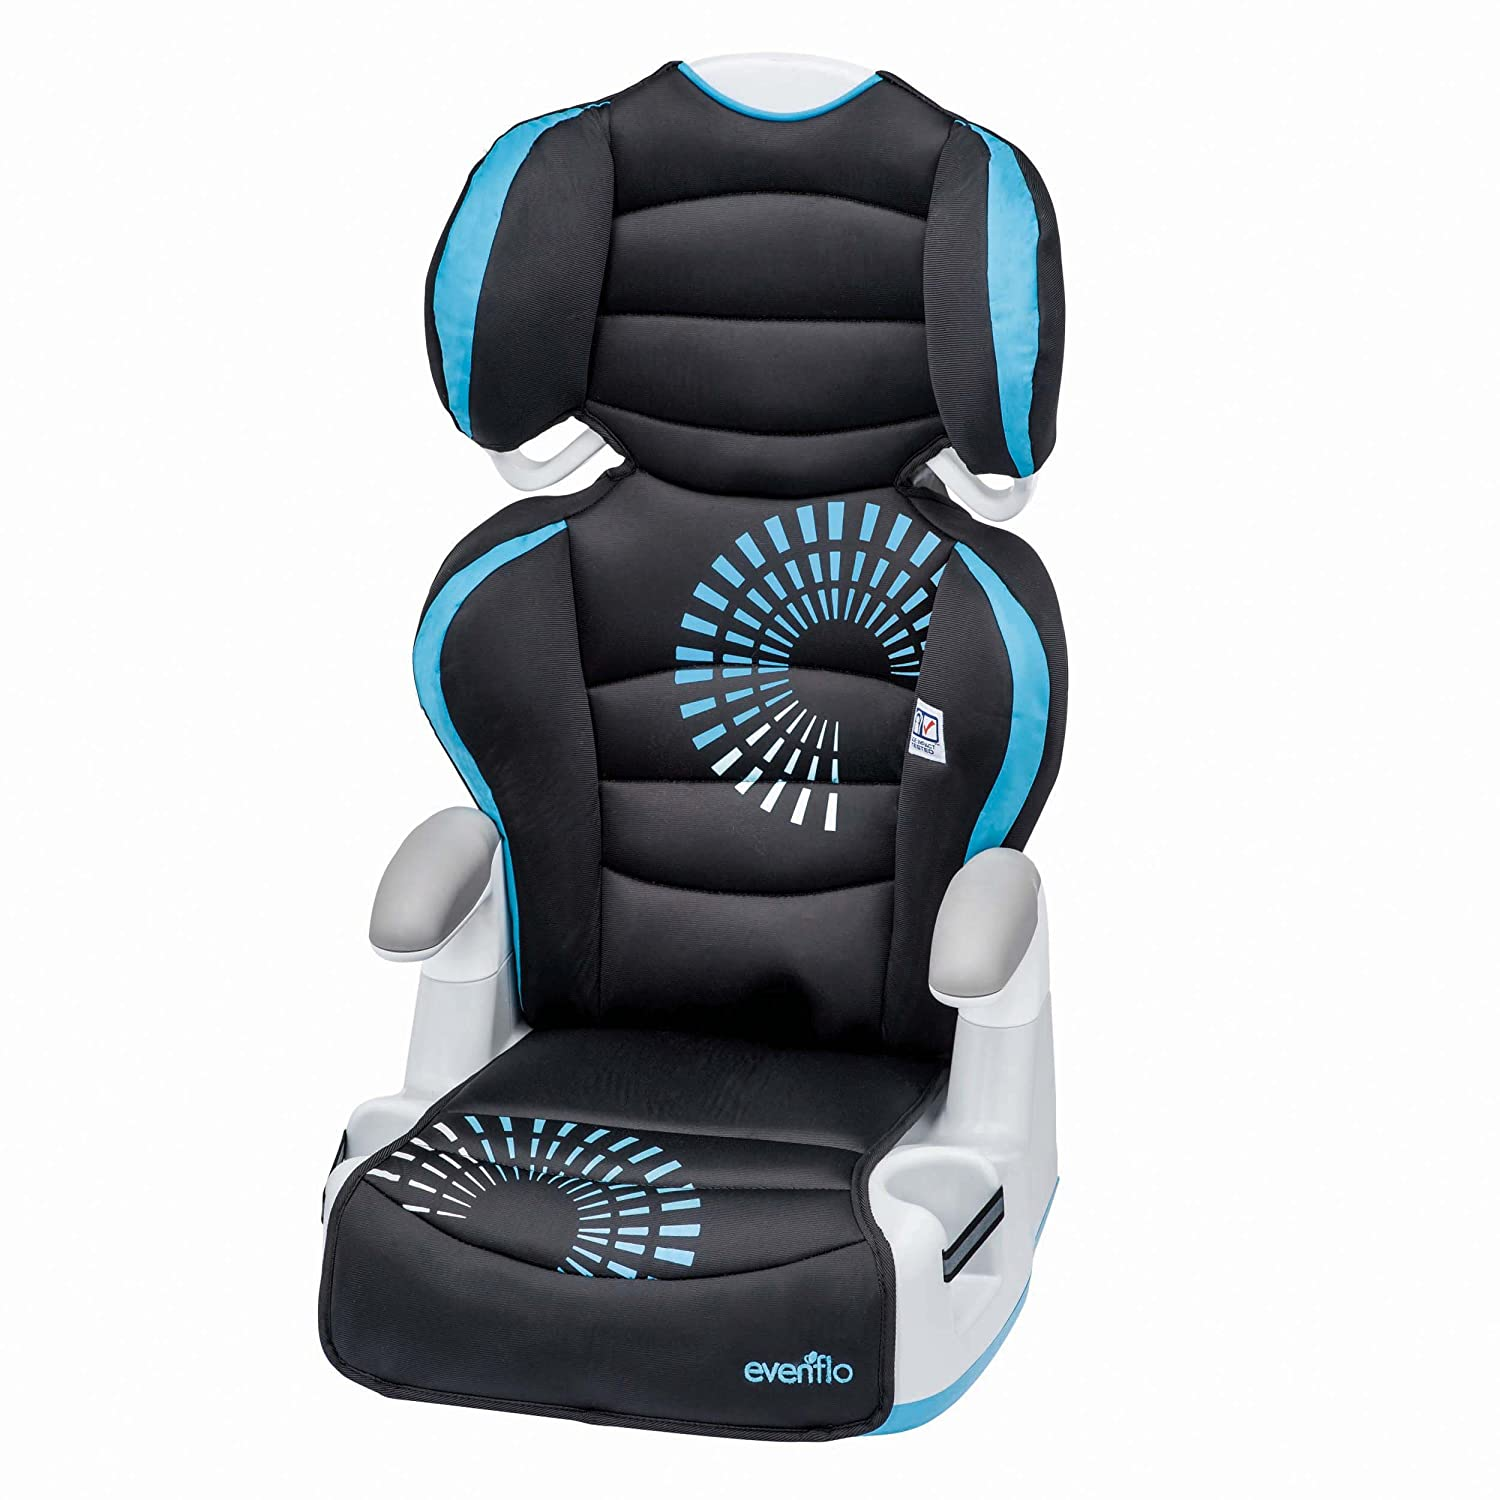 Evenflo Big Kid Amp High-Back 2-in-1 Booster Car Seat